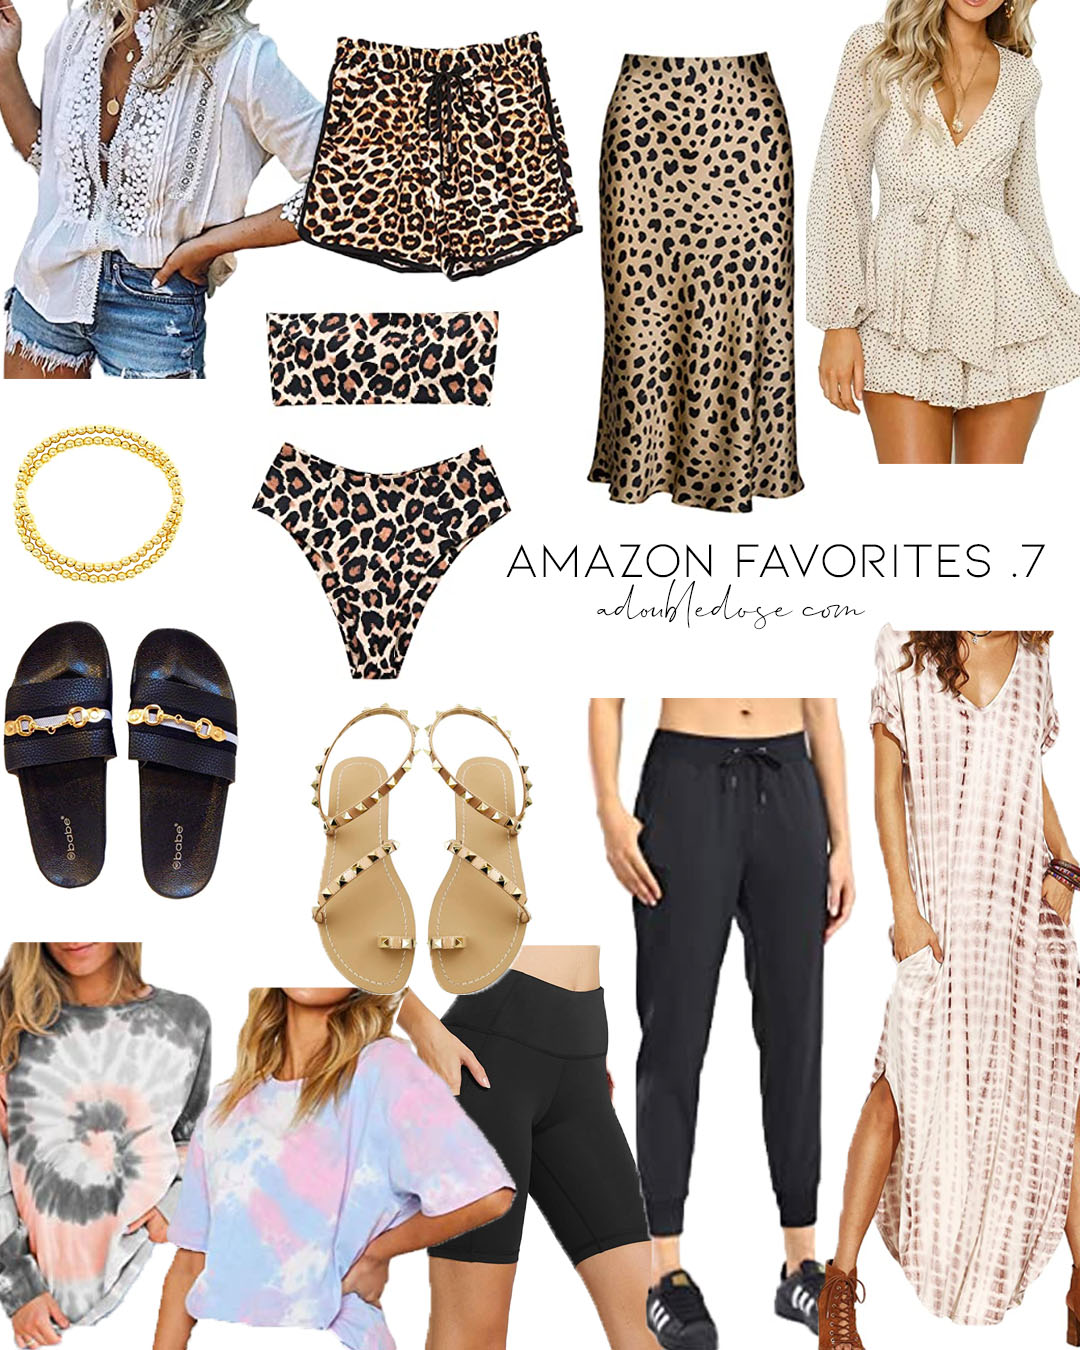 lifestyle and fashion blogger alexis belbel sharing amazon favorites like leopard bikini, black joggers, tie dye tee, tie dye maxi dress, studded sandals and more | adoubledose.com